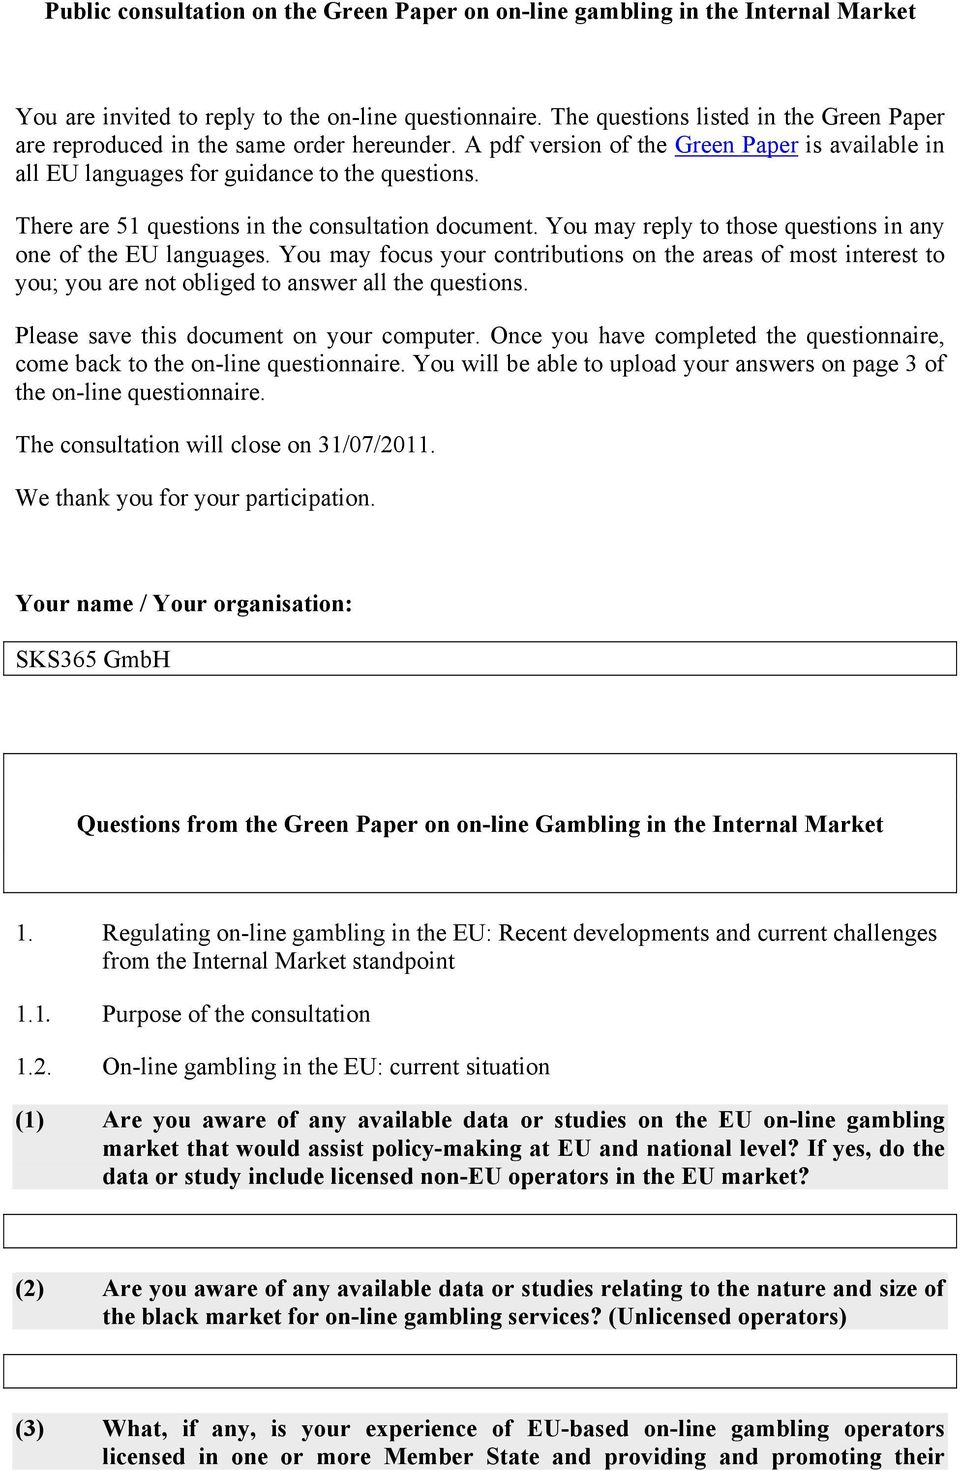 There are 51 questions in the consultation document. You may reply to those questions in any one of the EU languages.